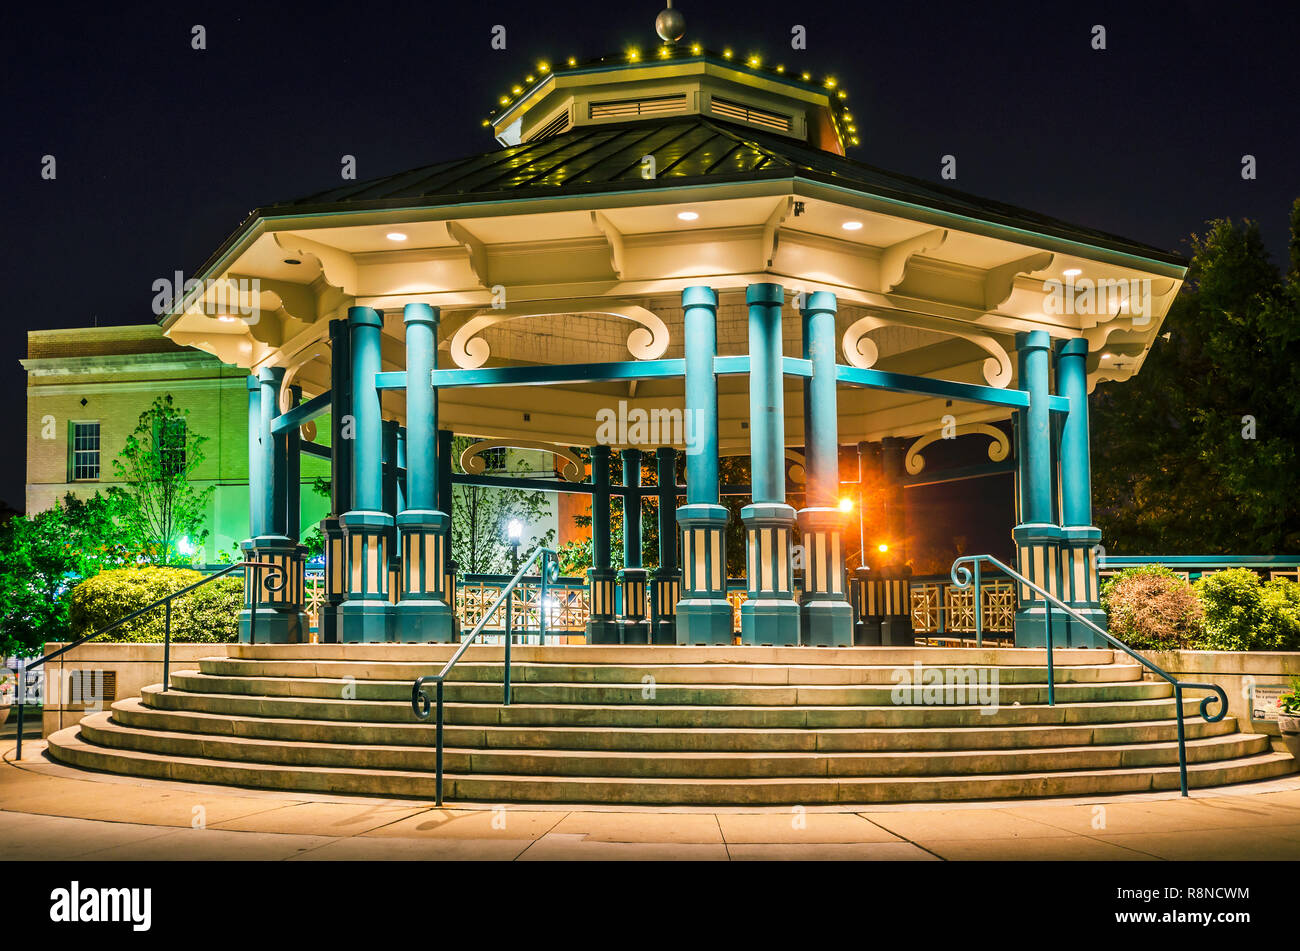 The Decatur Square gazebo and bandstand is pictured at night, June 4, 2014, in Decatur, Georgia. - Stock Image